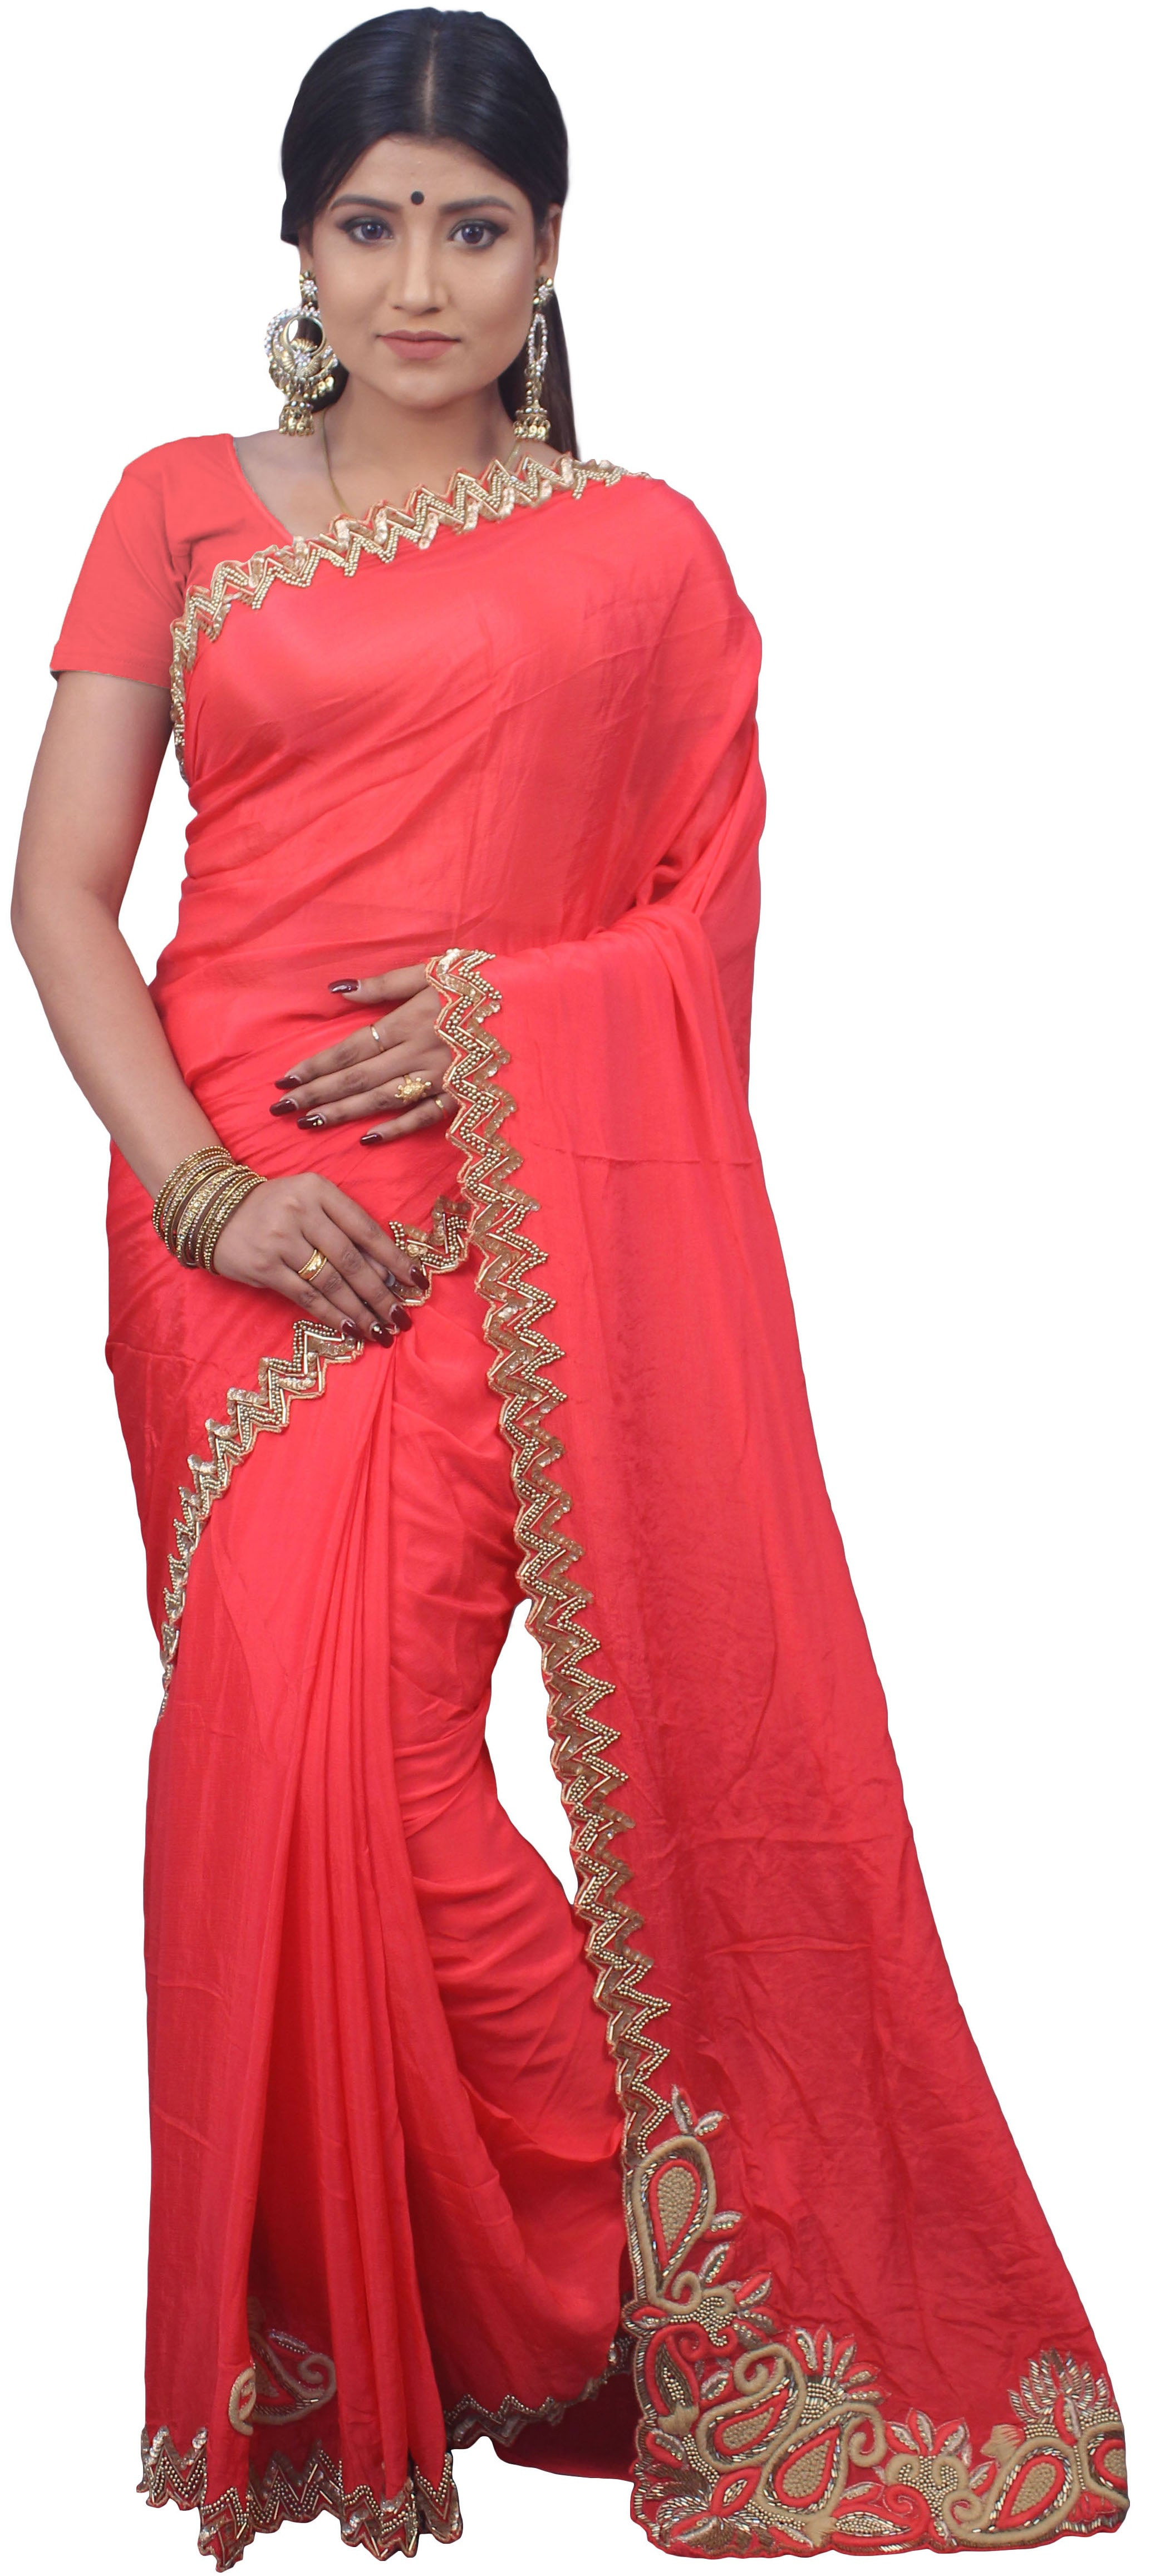 SMSAREE Pink Designer Wedding Partywear Crepe (Chinon) Cutdana Thread Sequence & Beads Hand Embroidery Work Bridal Saree Sari With Blouse Piece E550